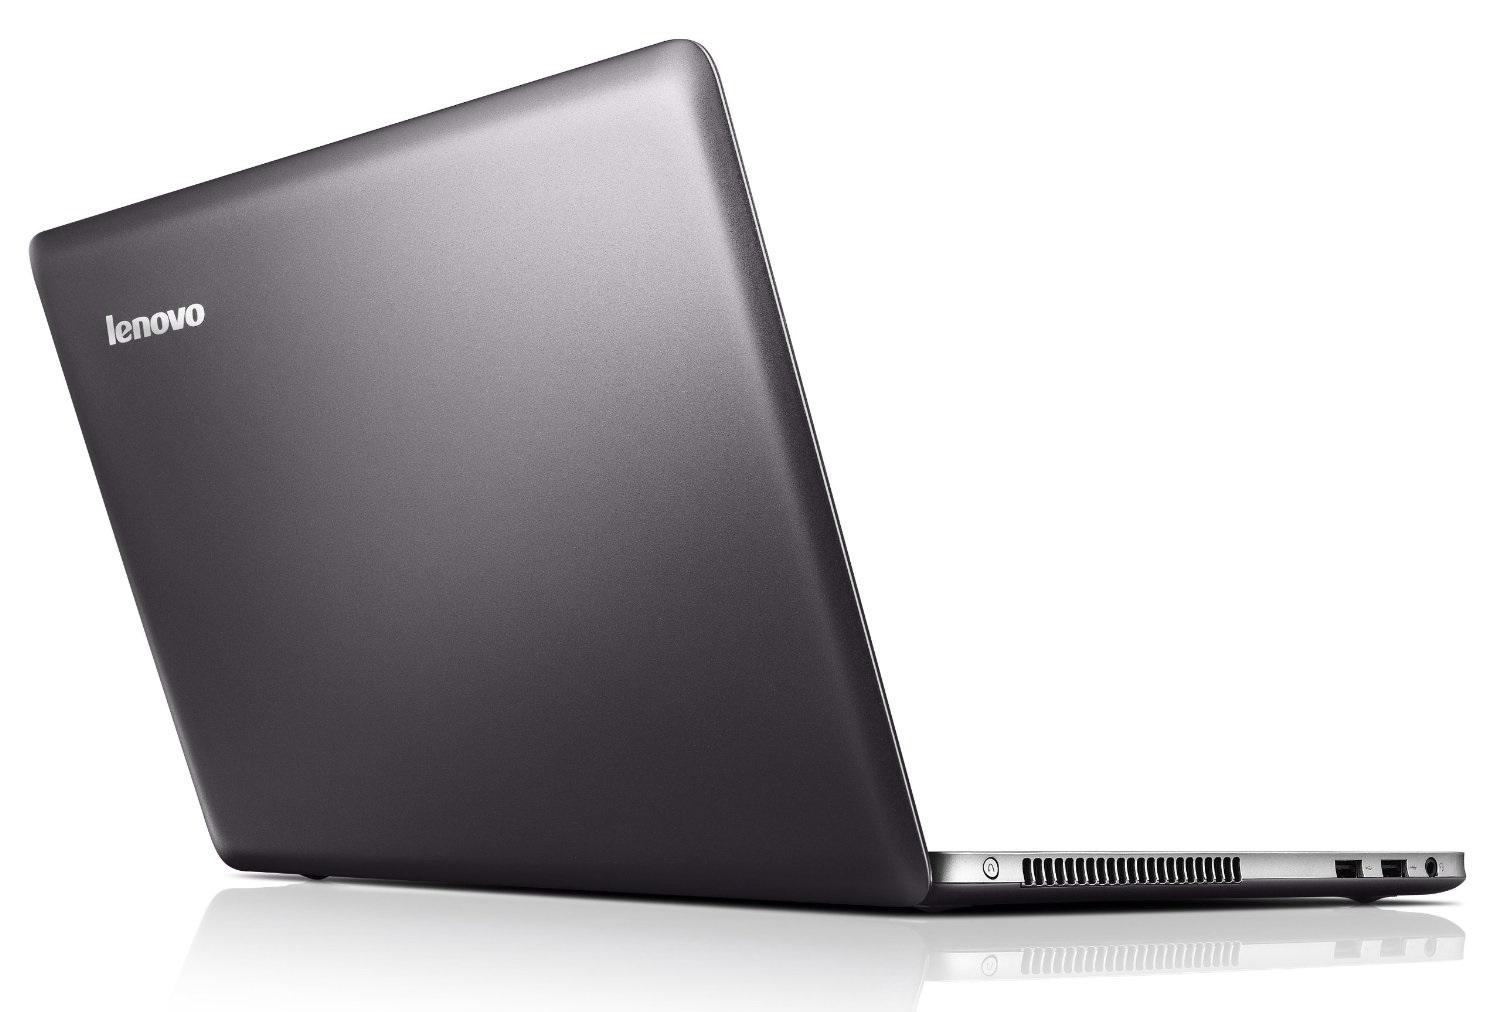 Lenovo%20video%20editing%20notebook Laptops for Video Editing